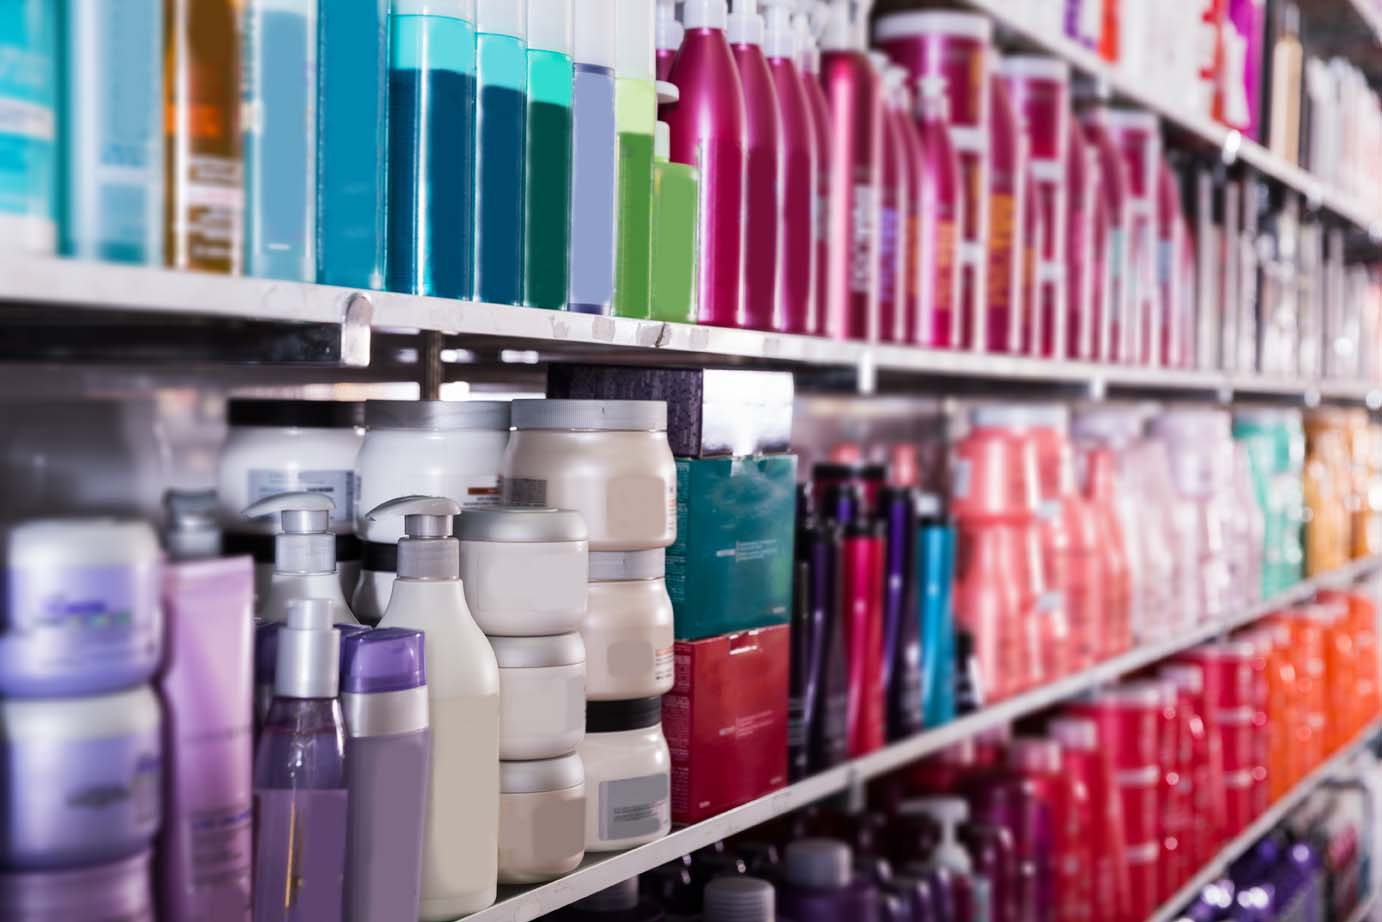 What Ingredients Should You Avoid or Not in Hair Products? title image